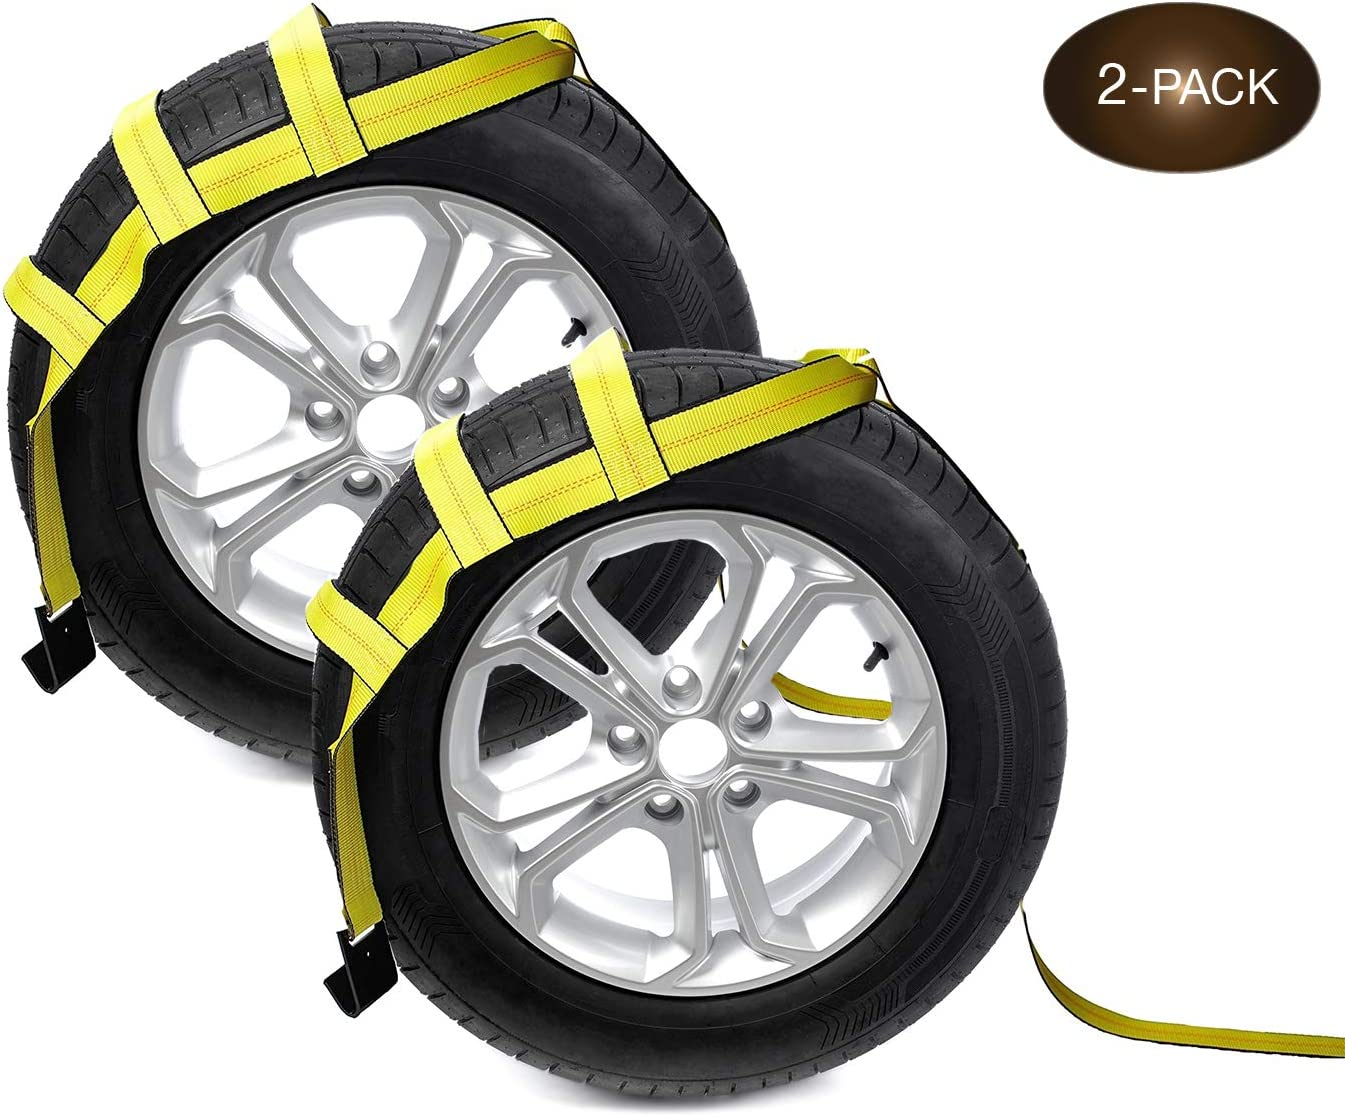 DC Cargo Mall Philadelphia Mall Tow Dolly Basket Straps Be super welcome 2-Pack with Hooks Flat